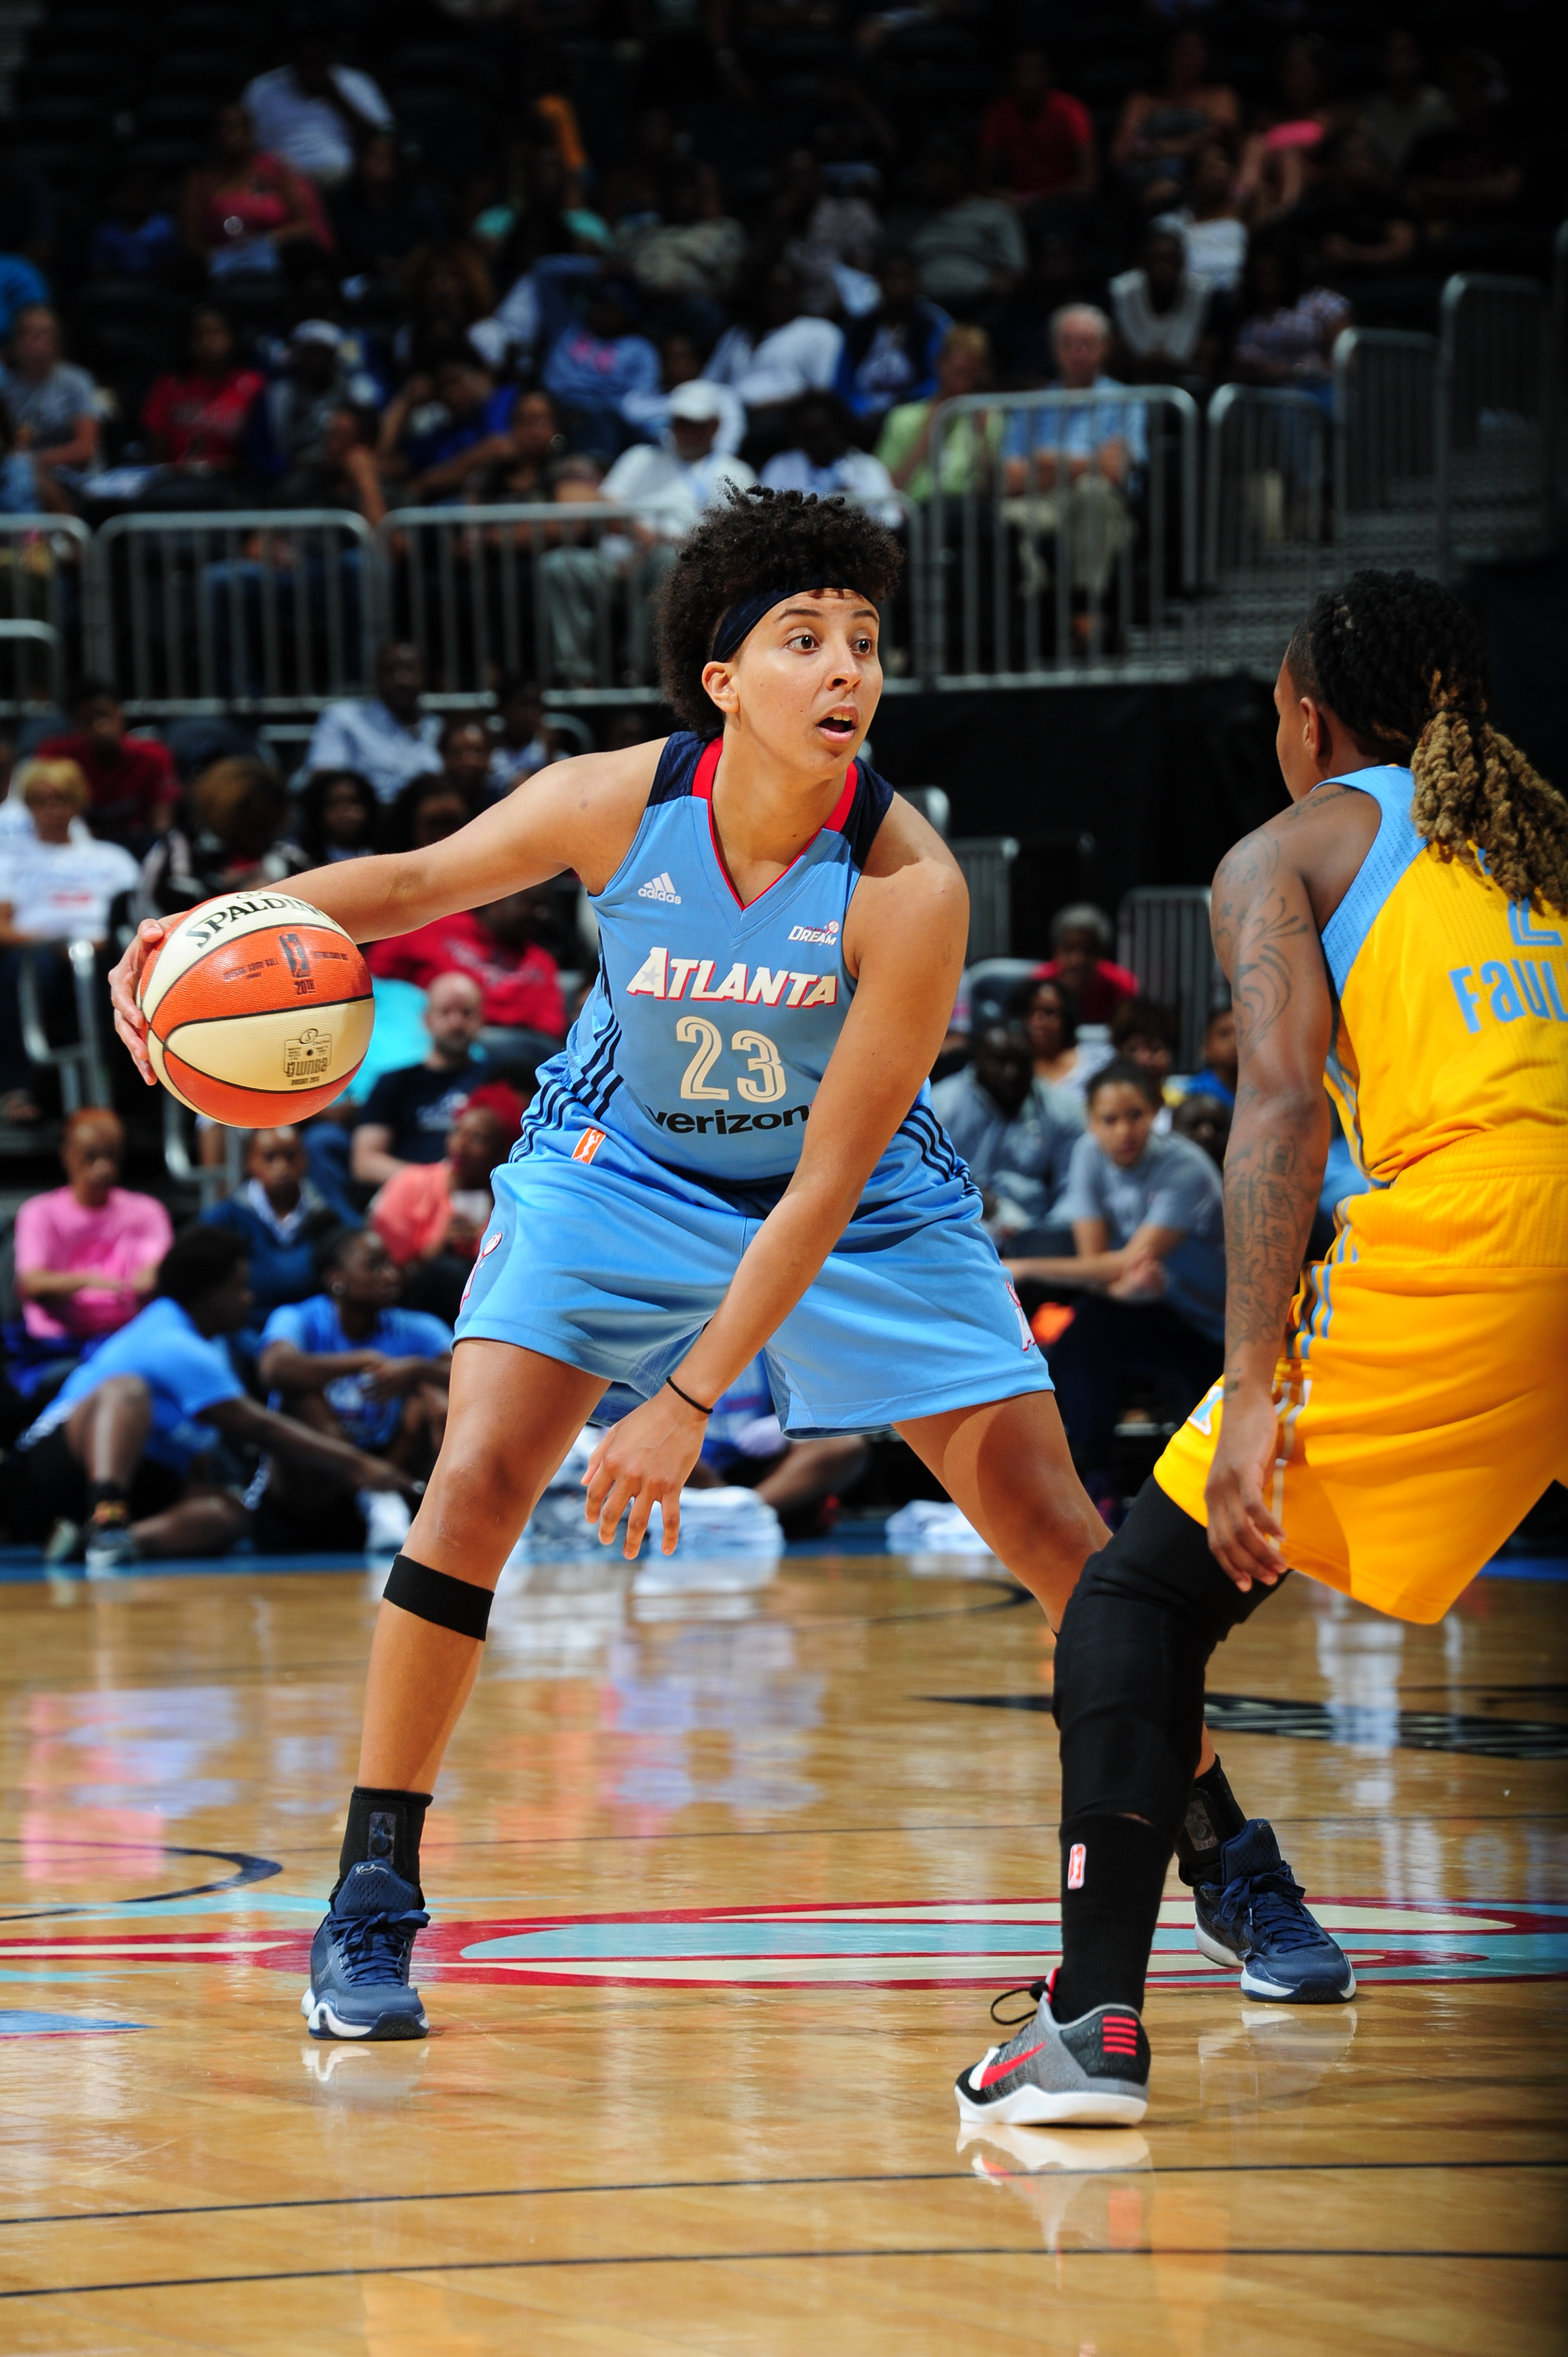 ATLANTA, GA - JUNE 17: Layshia Clarendon #23 of the Atlanta Dream handles the ball against the Chicago Sky on June 17, 2016 at Philips Arena in Atlanta, Georgia. NOTE TO USER: User expressly acknowledges and agrees that, by downloading and/or using this Photograph, user is consenting to the terms and conditions of the Getty Images License Agreement. Mandatory Copyright Notice: Copyright 2016 NBAE (Photo by Scott Cunningham/NBAE via Getty Images)